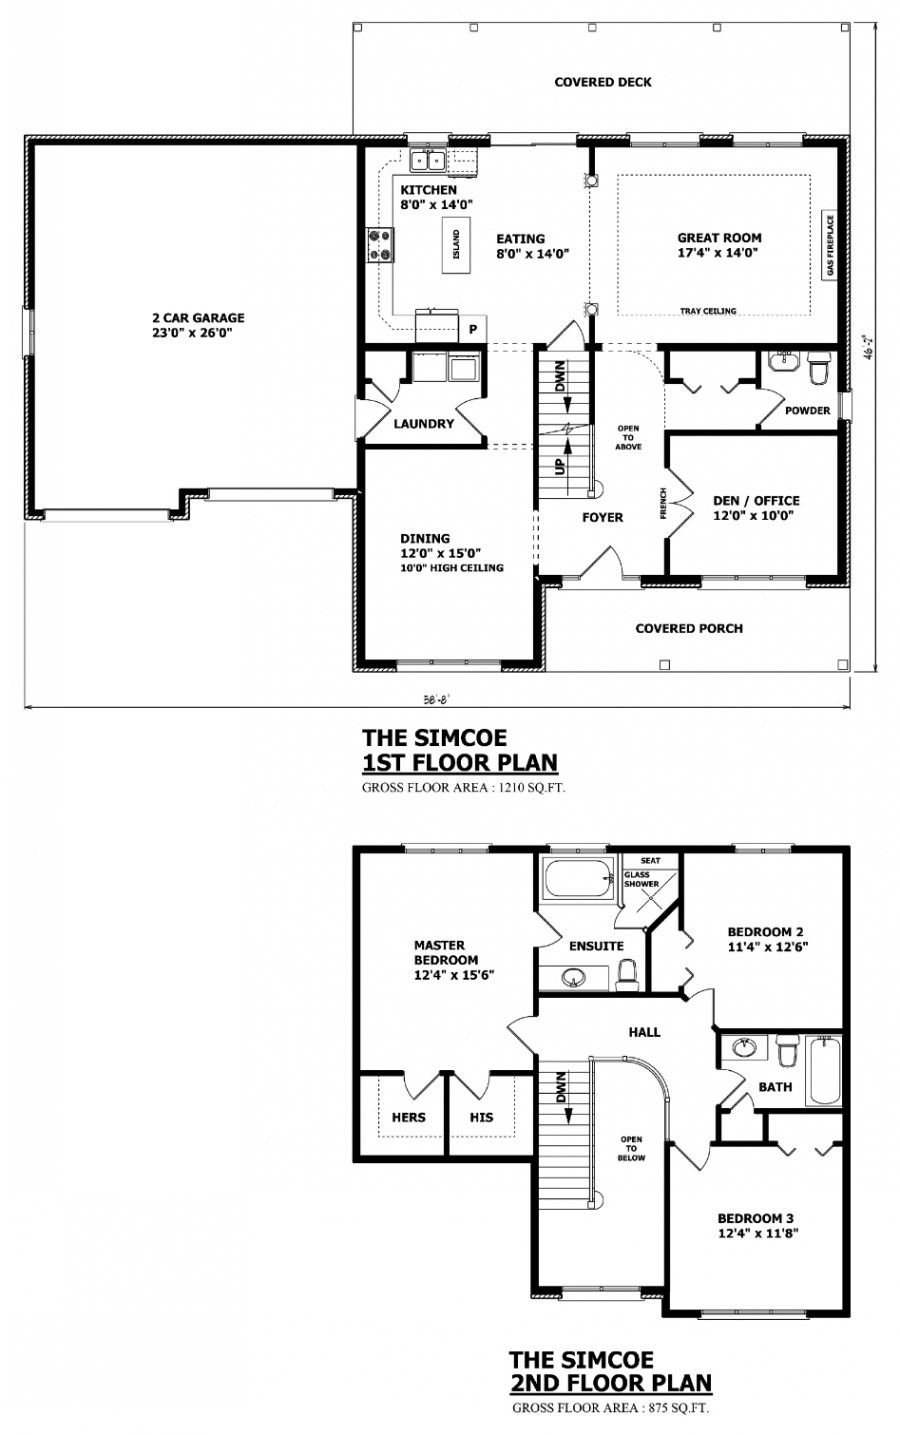 Canadian Home Designs Custom House Plans Stock House Plans Garage Plans Two Storey House Plans Custom Home Plans Master Bedroom Remodel